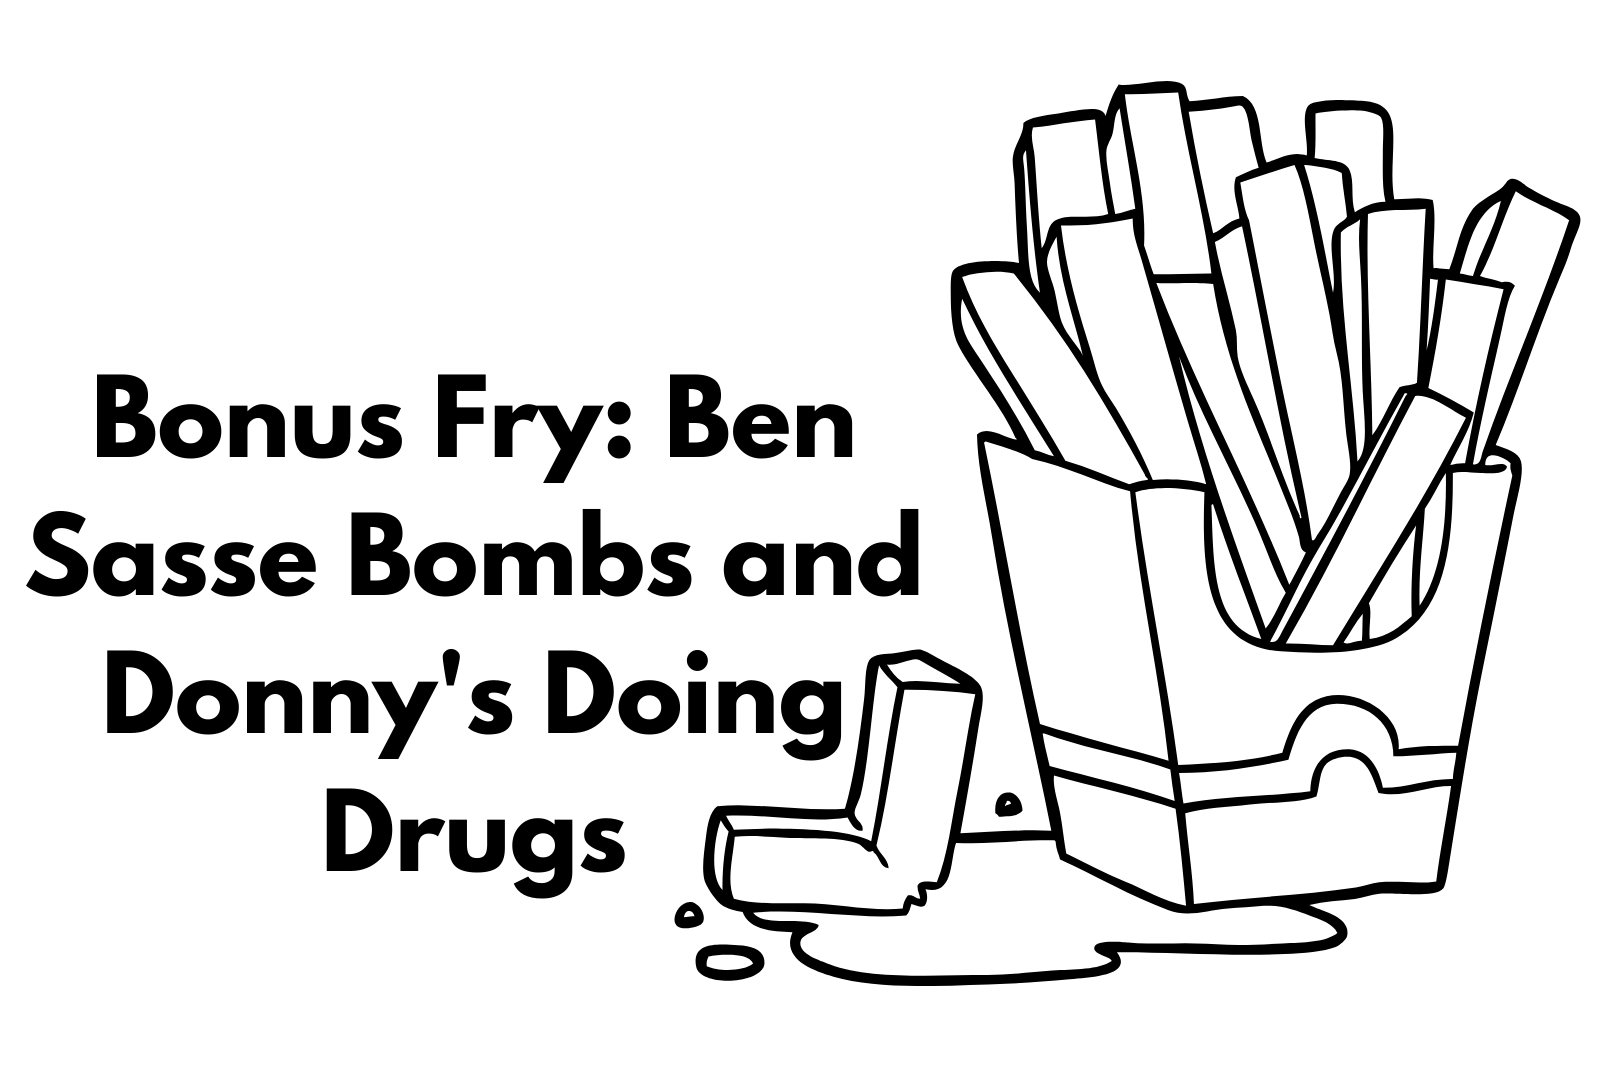 Bonus Fry: Ben Sasse Bombs and Donny is Taking Drugs